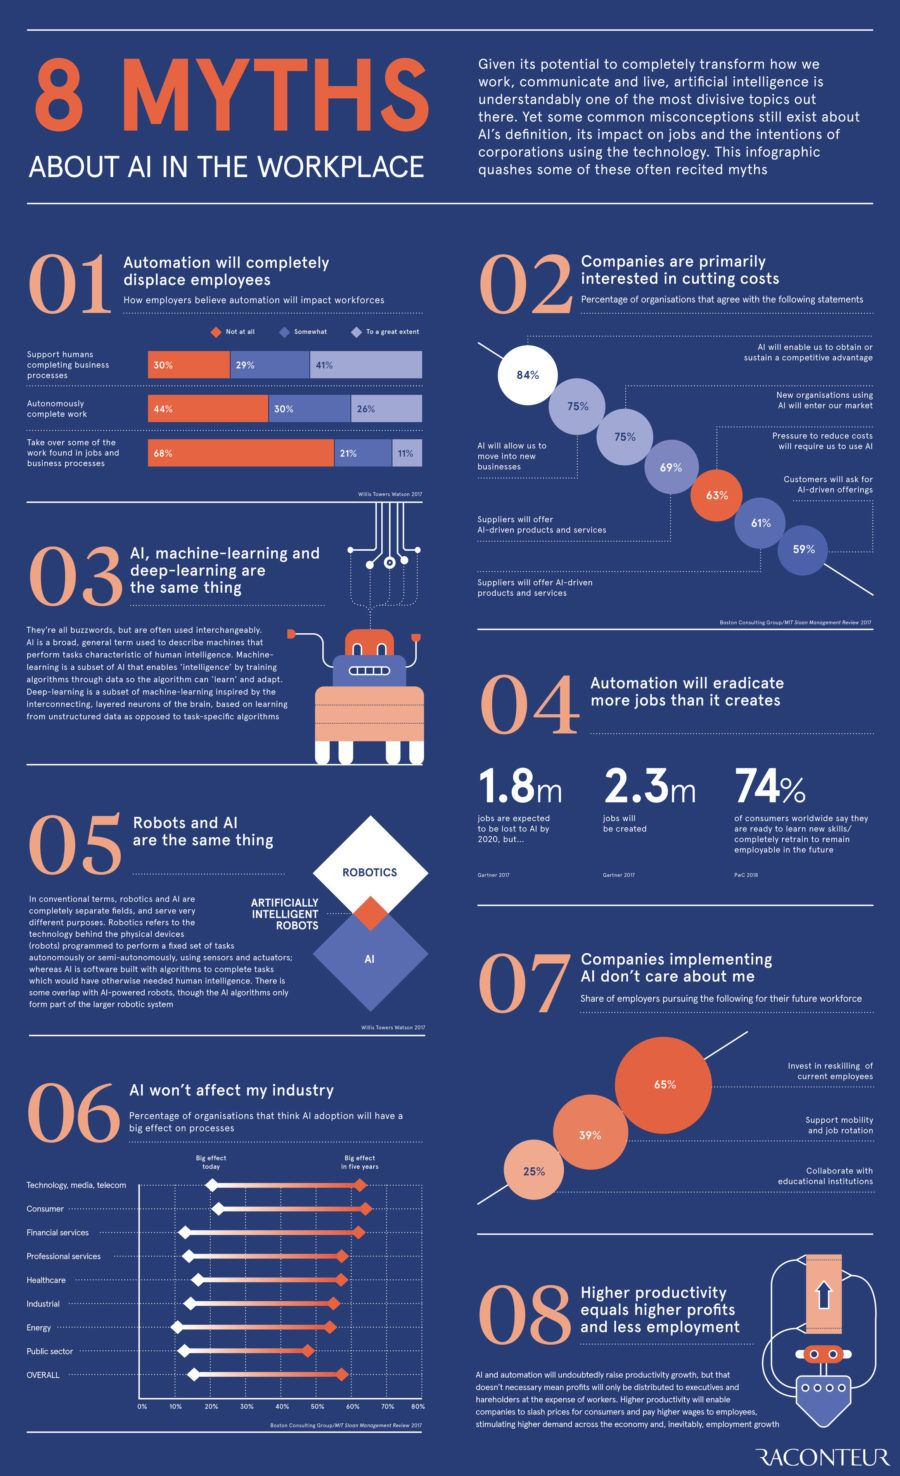 Some myths about AI's definition (impact on jobs and the